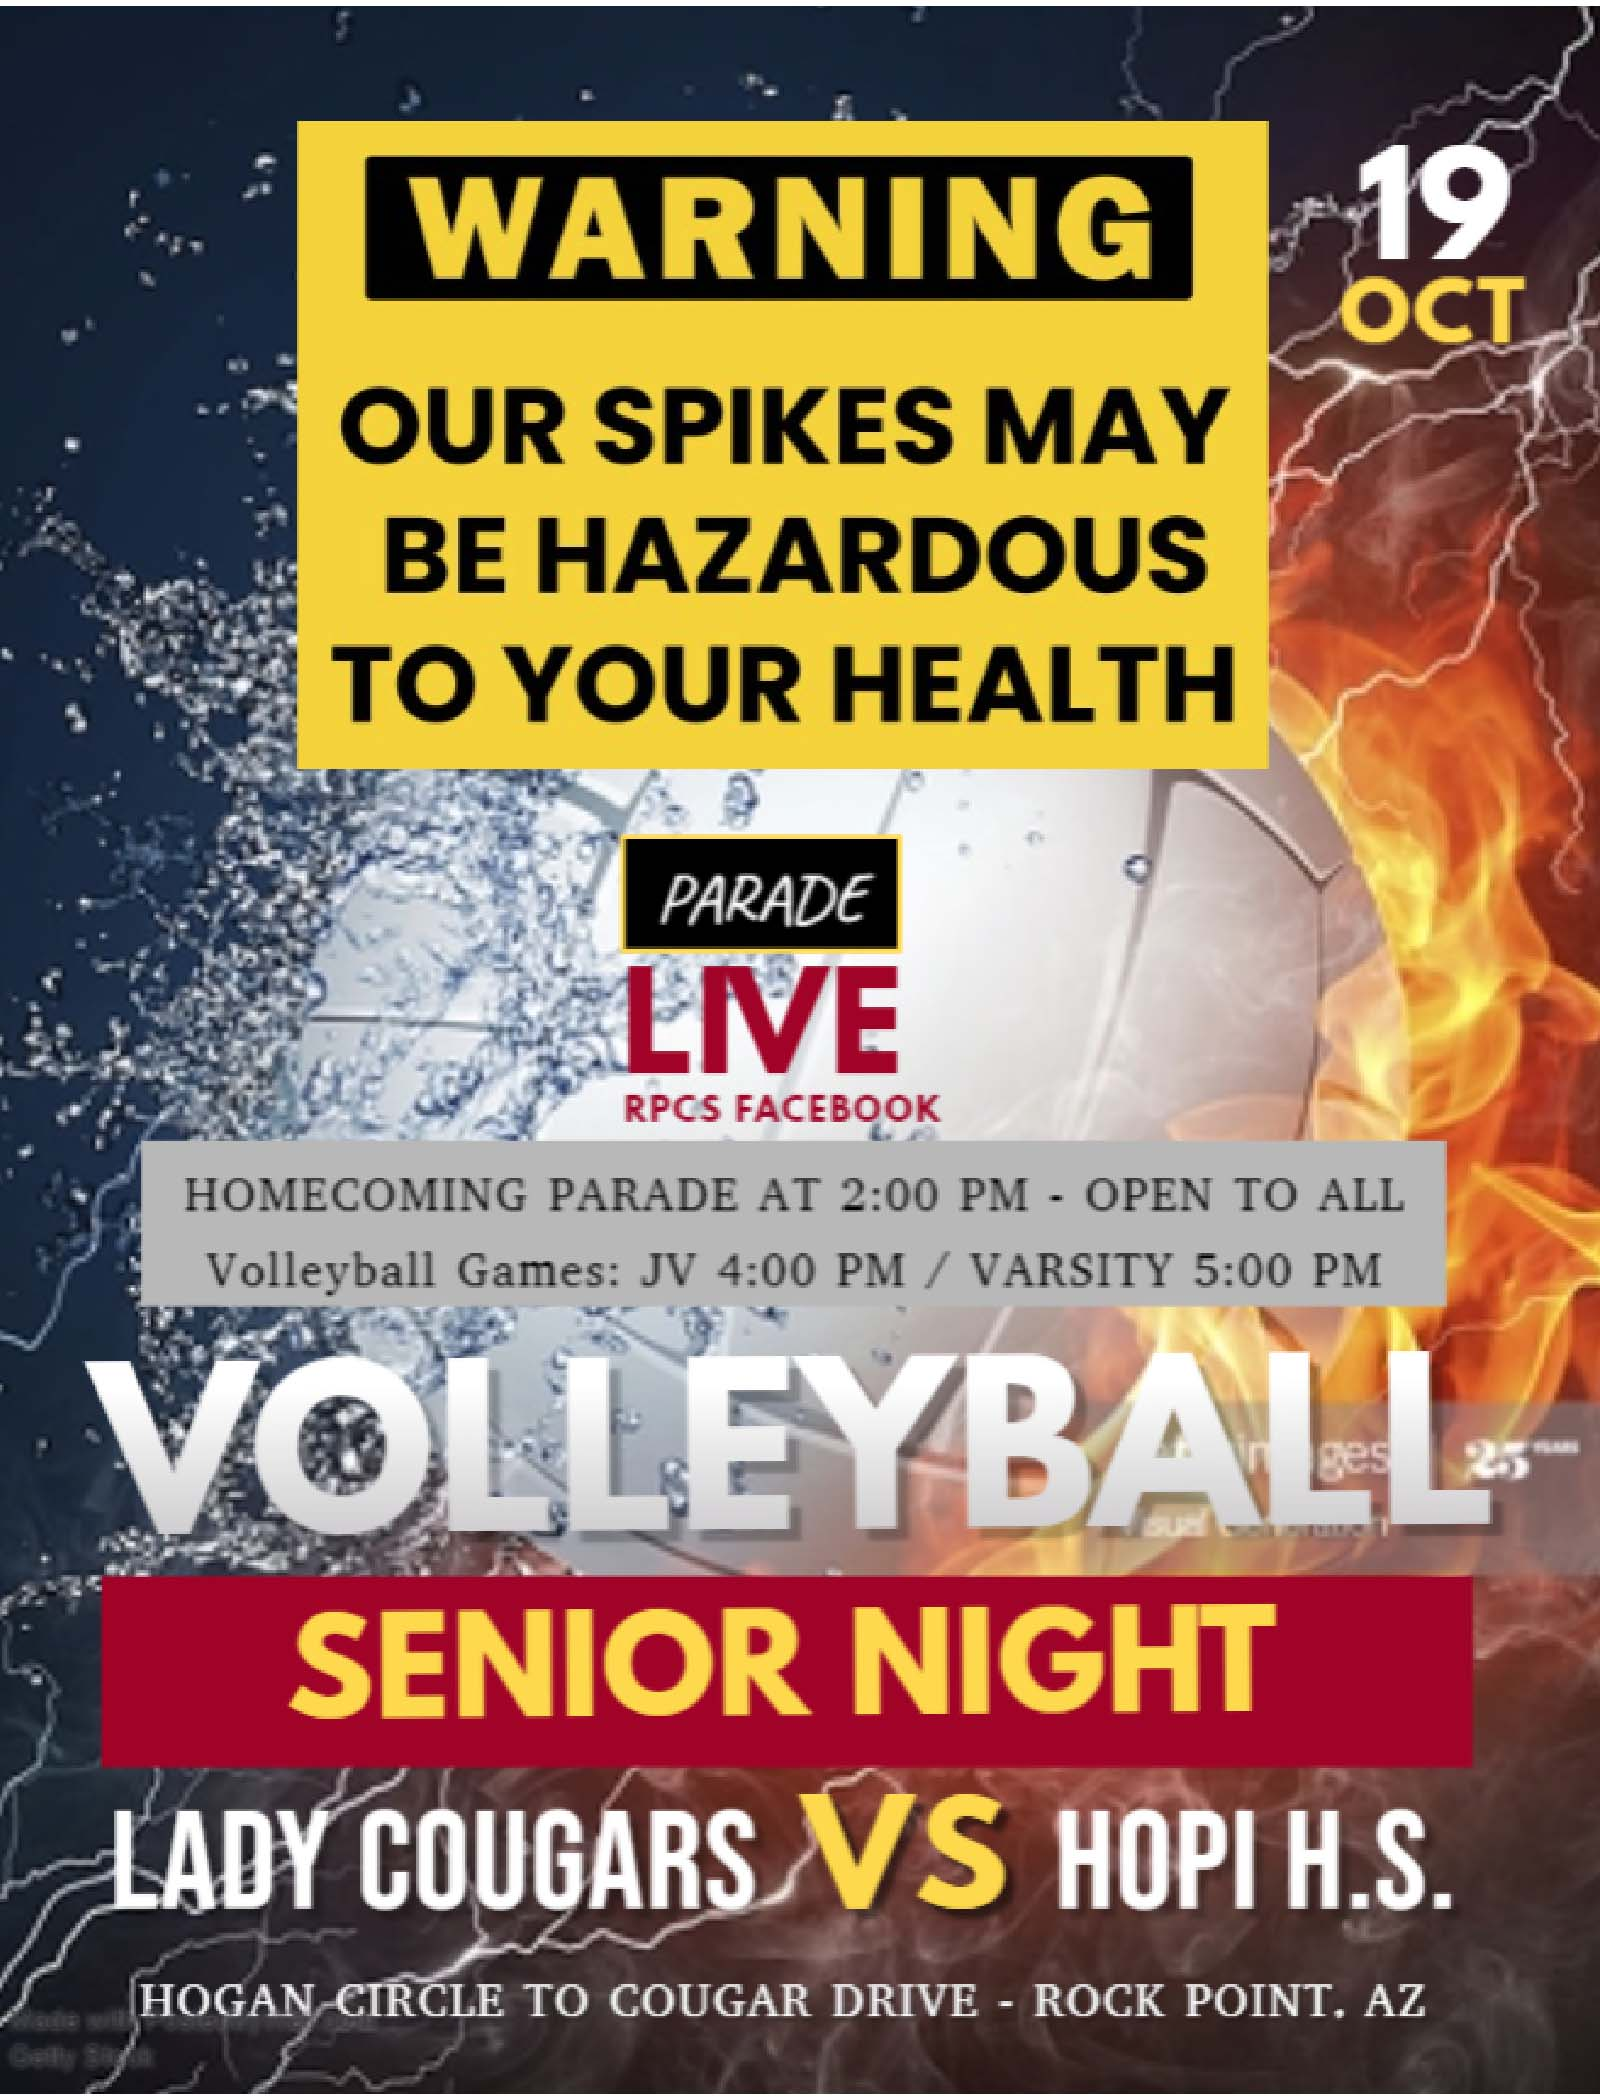 Volleyball Homecoming Parade Flyer